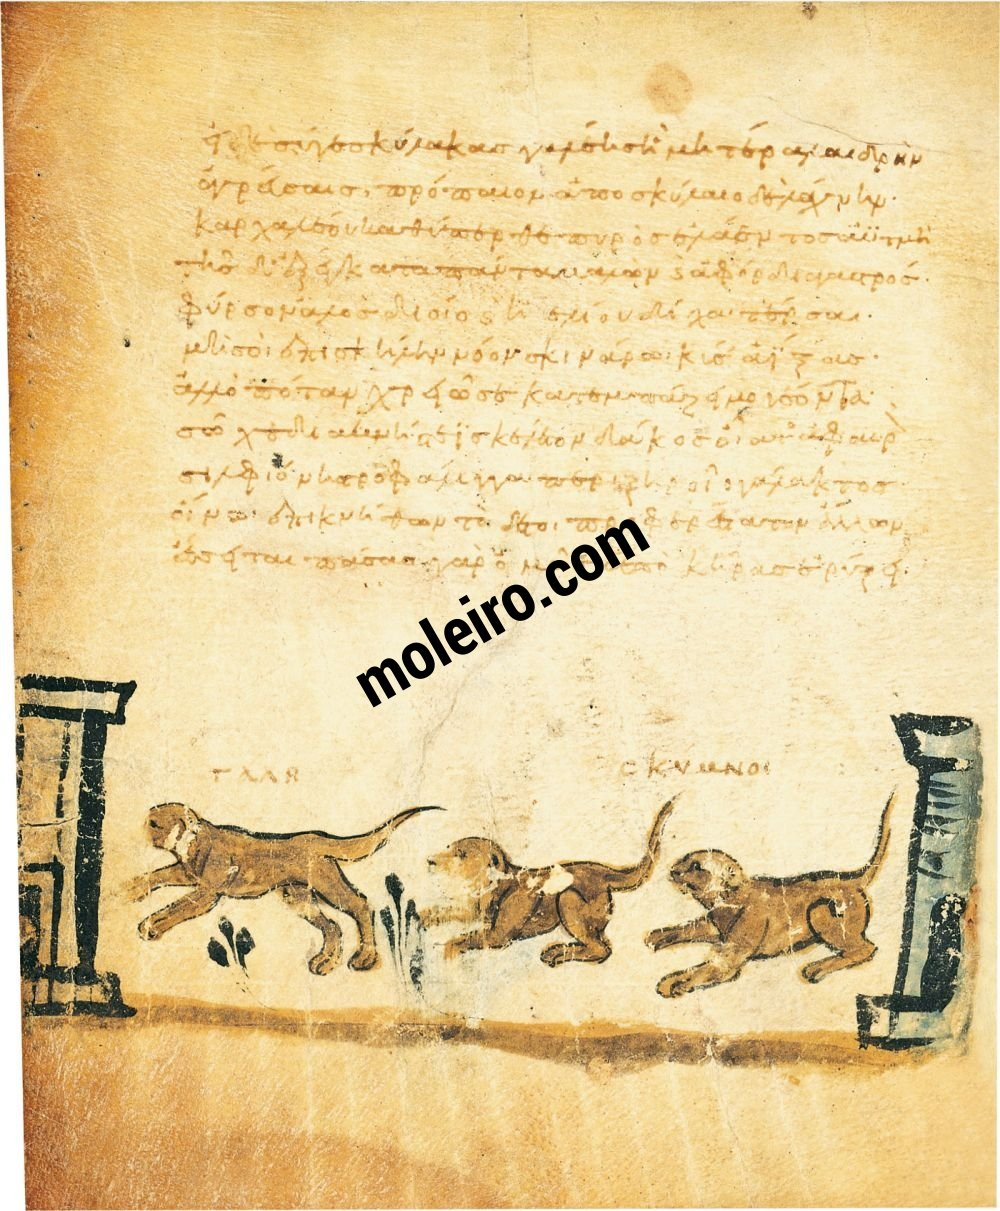 Theriaka and Alexipharmaka by Nicander folio 21v